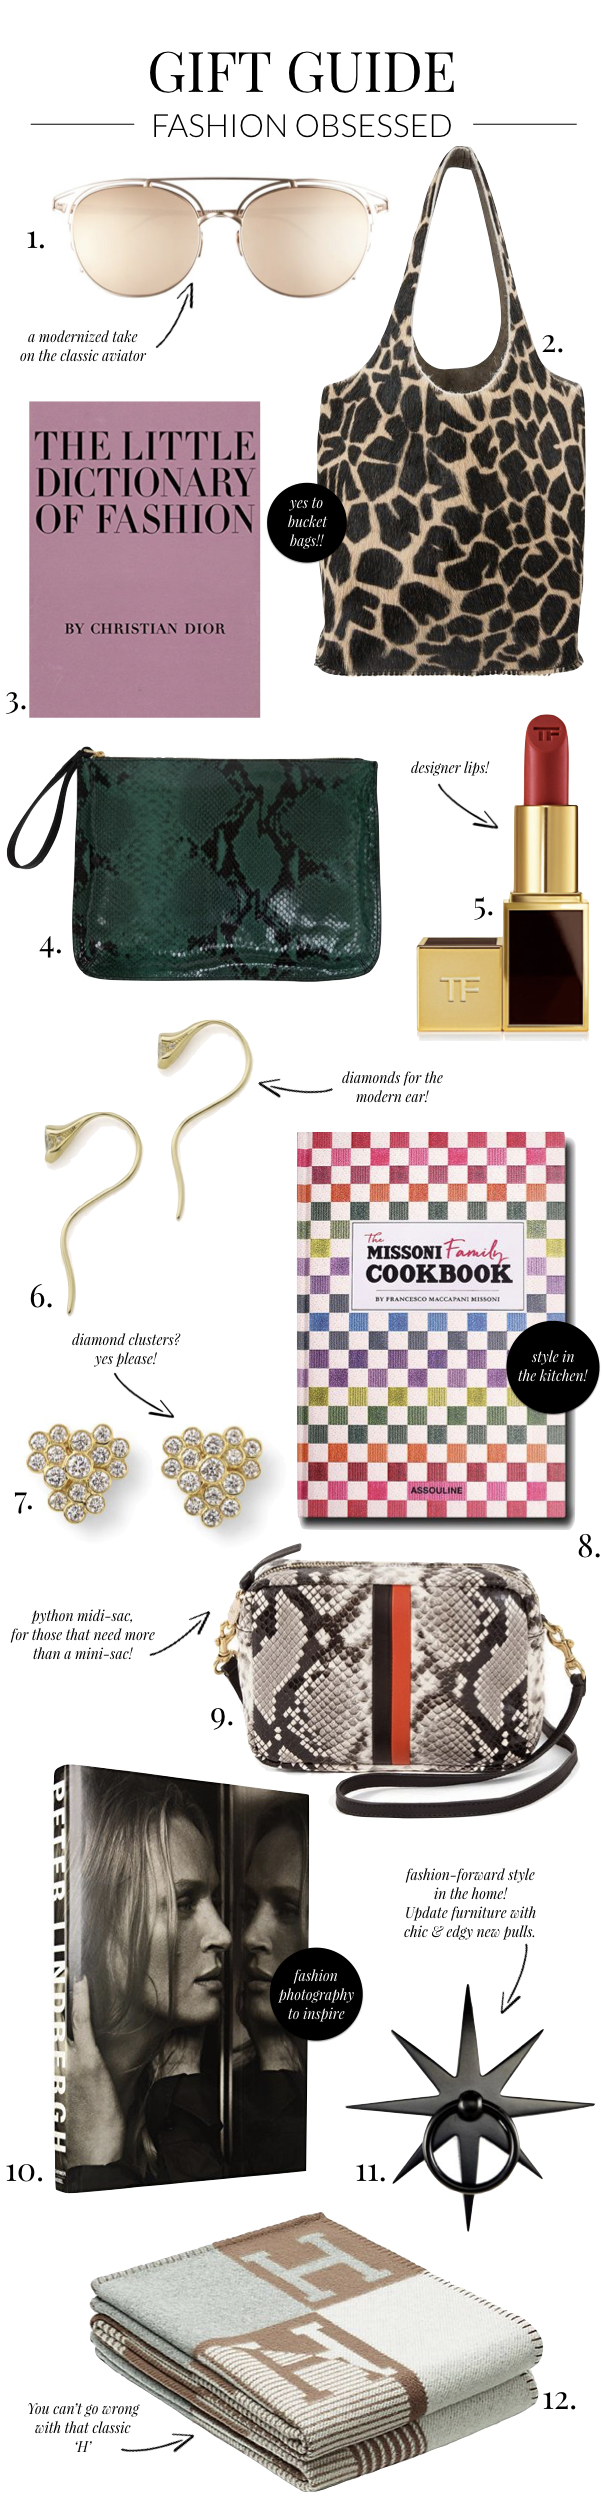 gift guide fashion lover 2018